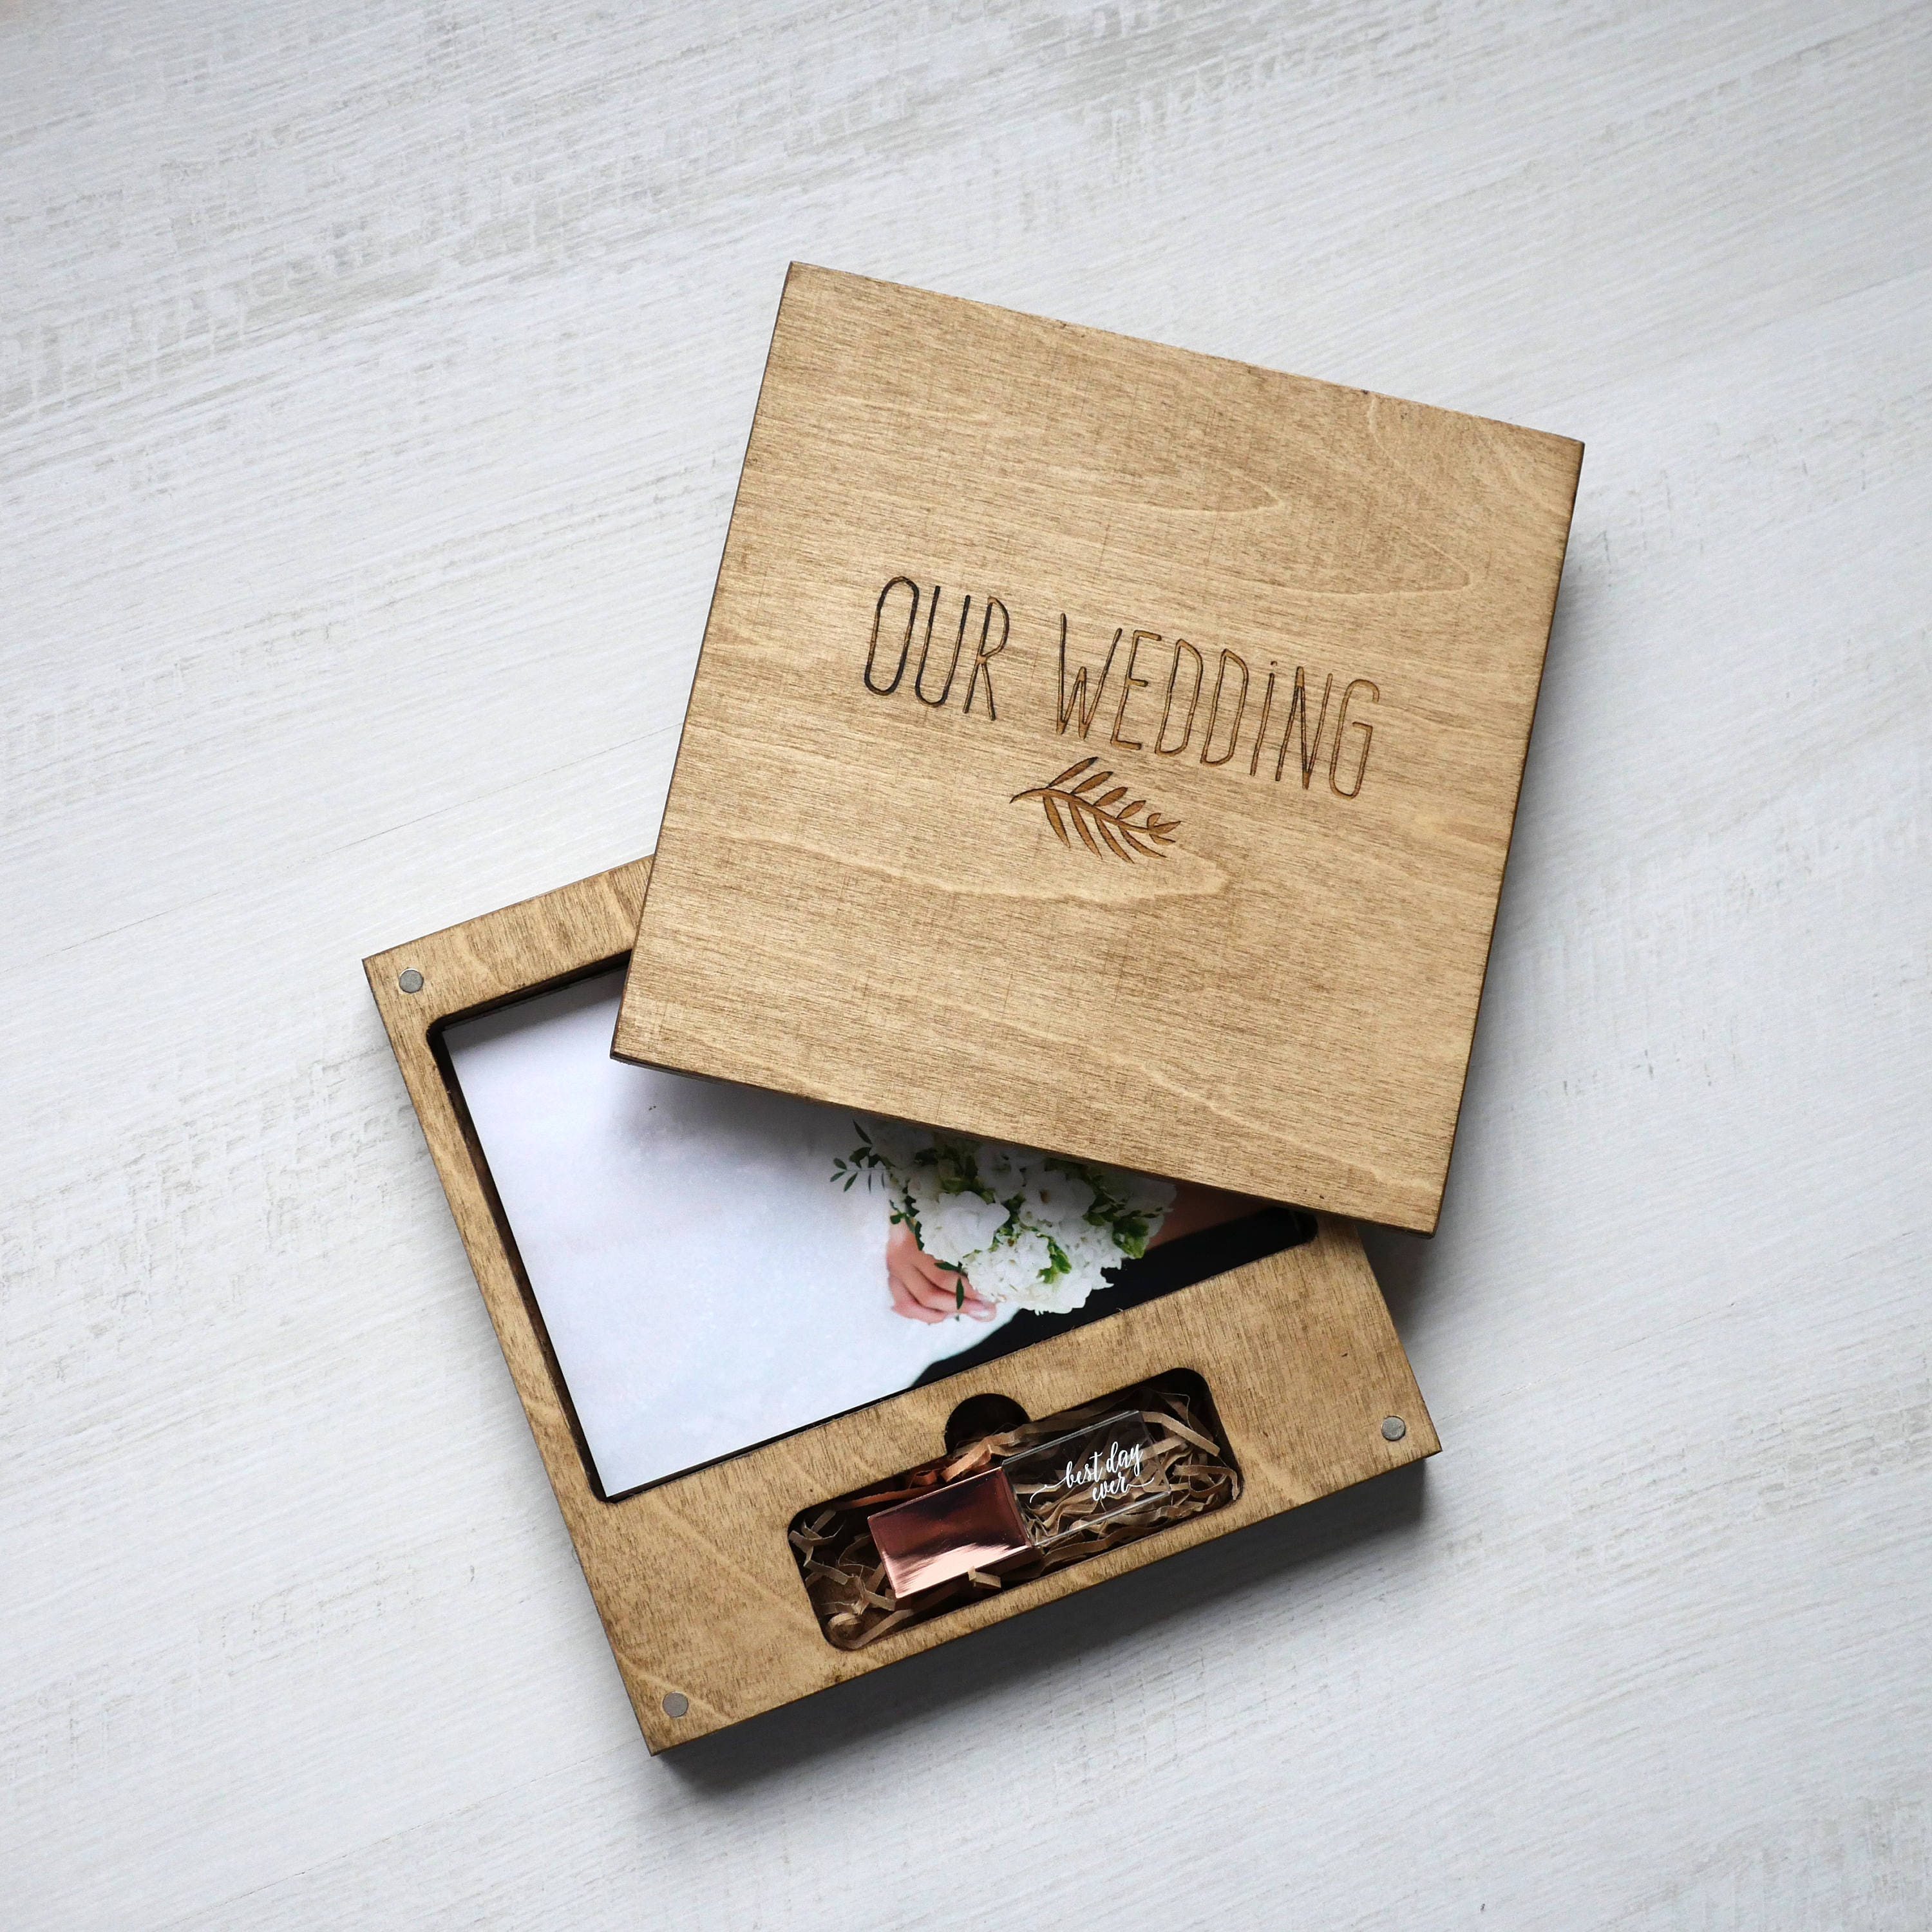 wood box for usb and photo 4x6 10x15cm wedding package